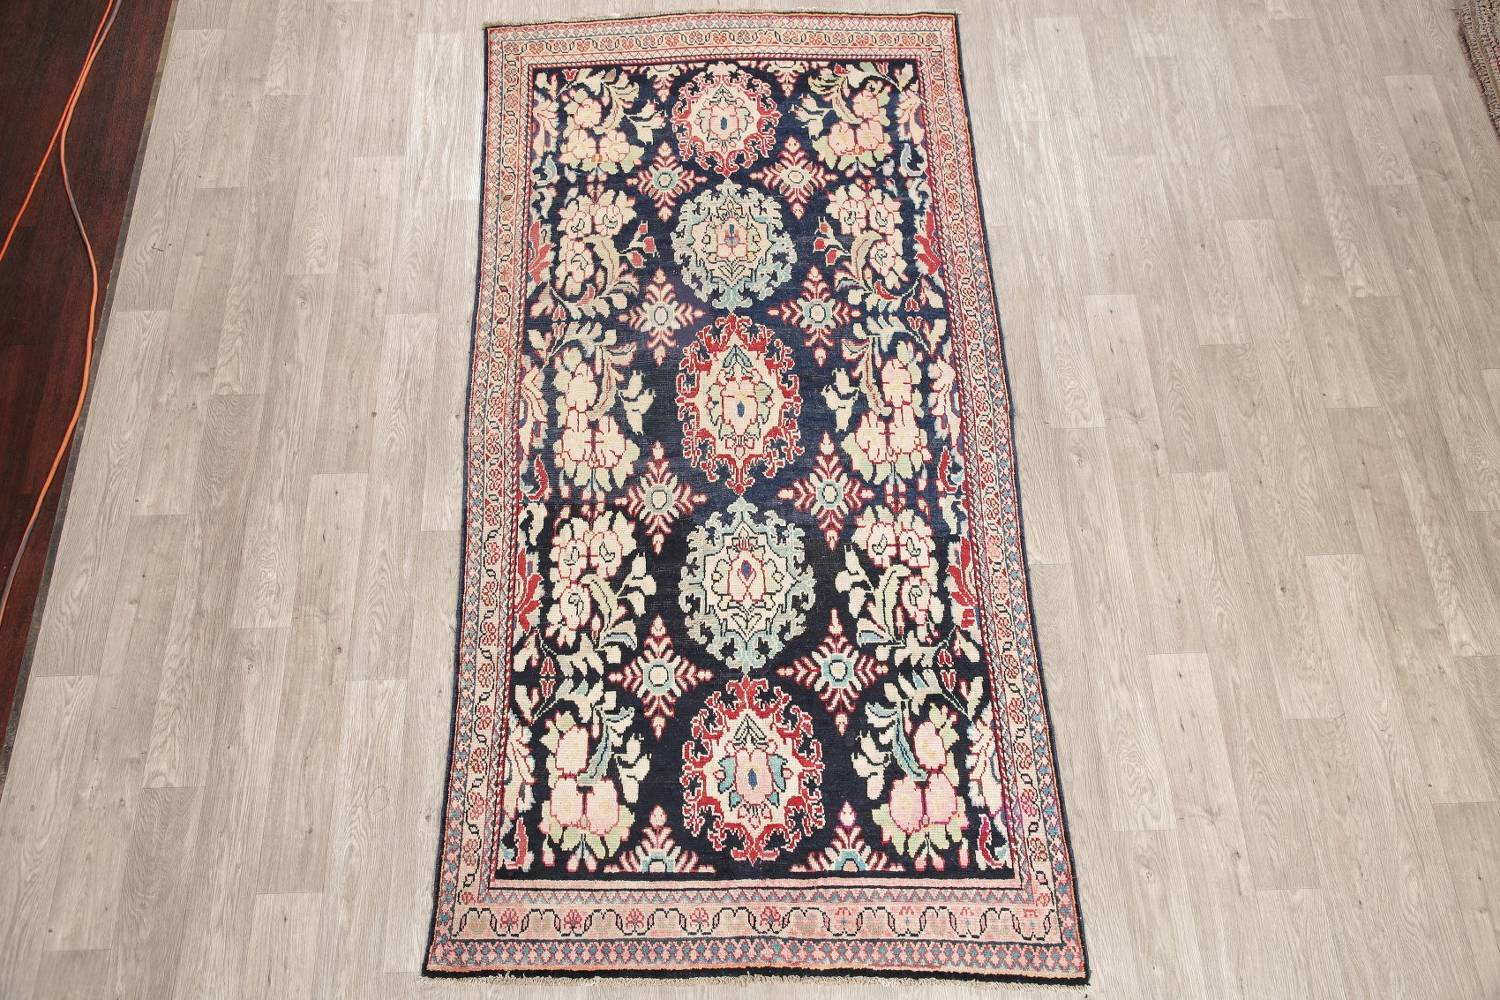 Antique Navy Blue Sultanabad Persian Runner Rug 5x9 image 2